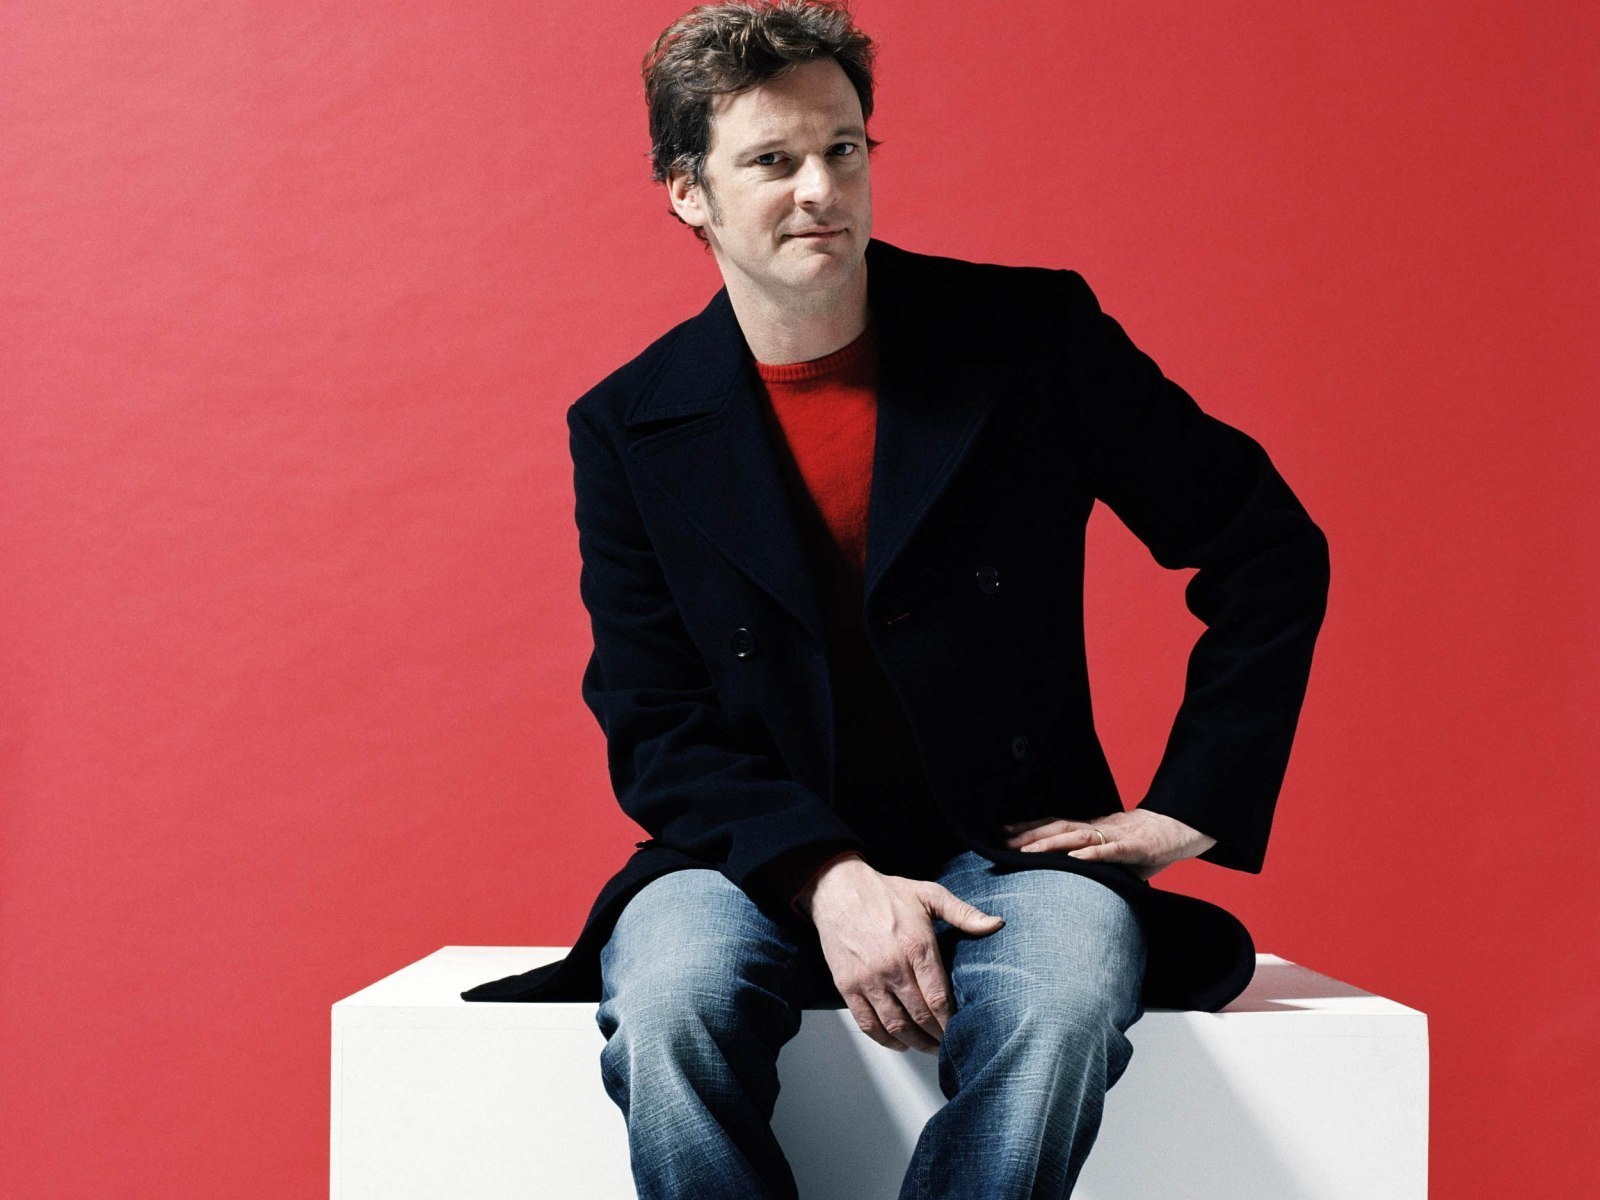 1600x1200 - Colin Firth Wallpapers 27